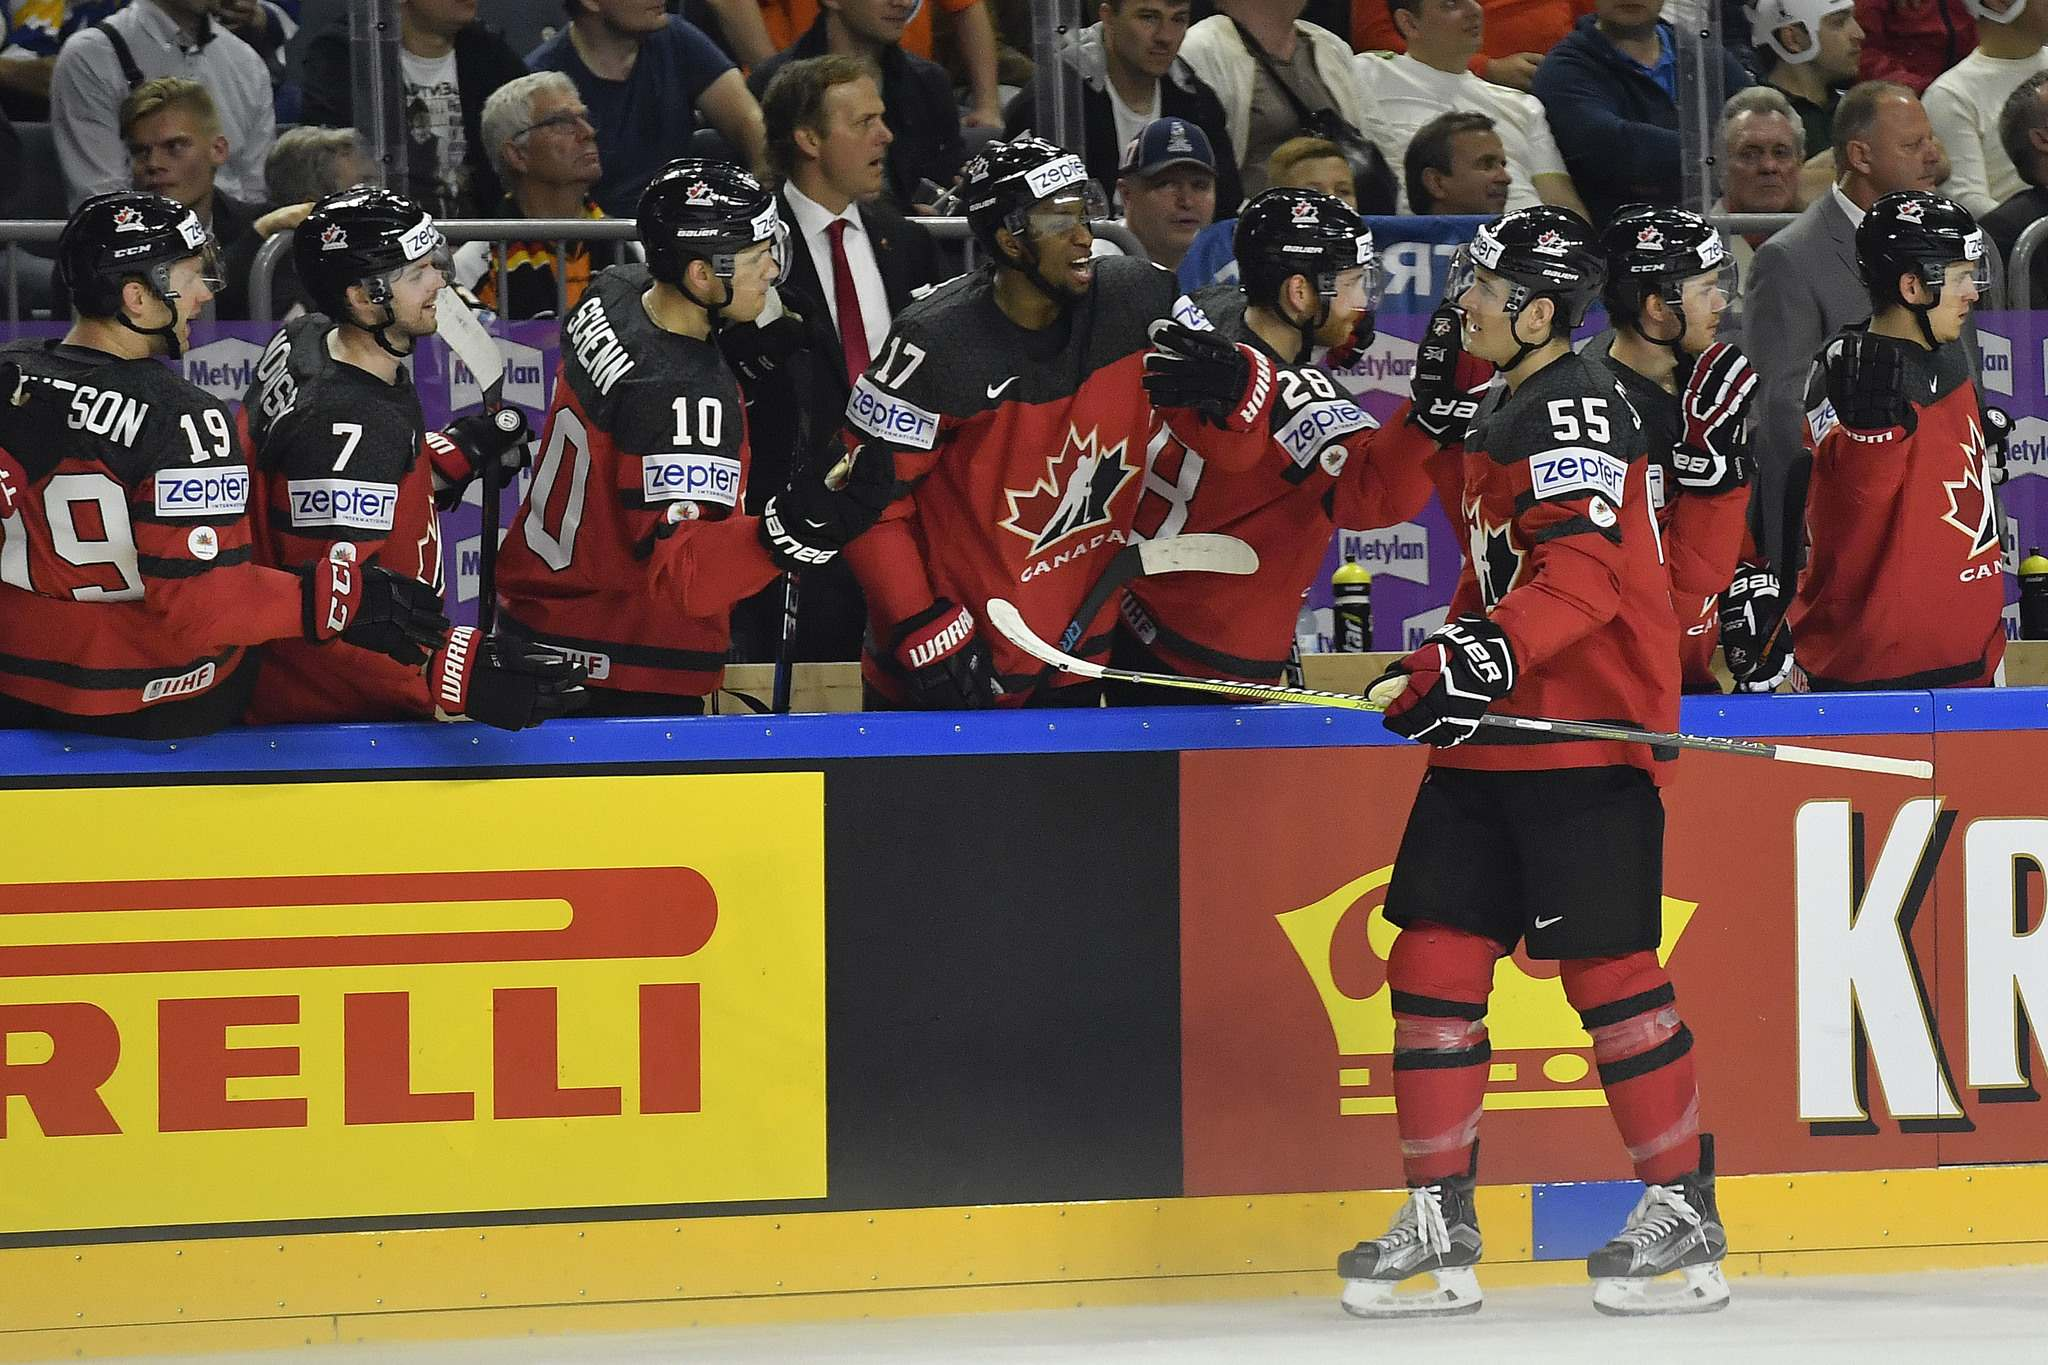 Canada&#39;s forward Mark Scheifele celebrates with team mates after scoring his side&#39;s opening goal at the Ice Hockey World Championships quarterfinal match between Canada and Germany in the LANXESS arena in Cologne, Germany, Thursday, May 18, 2017. (AP Photo/Martin Meissner)</p>